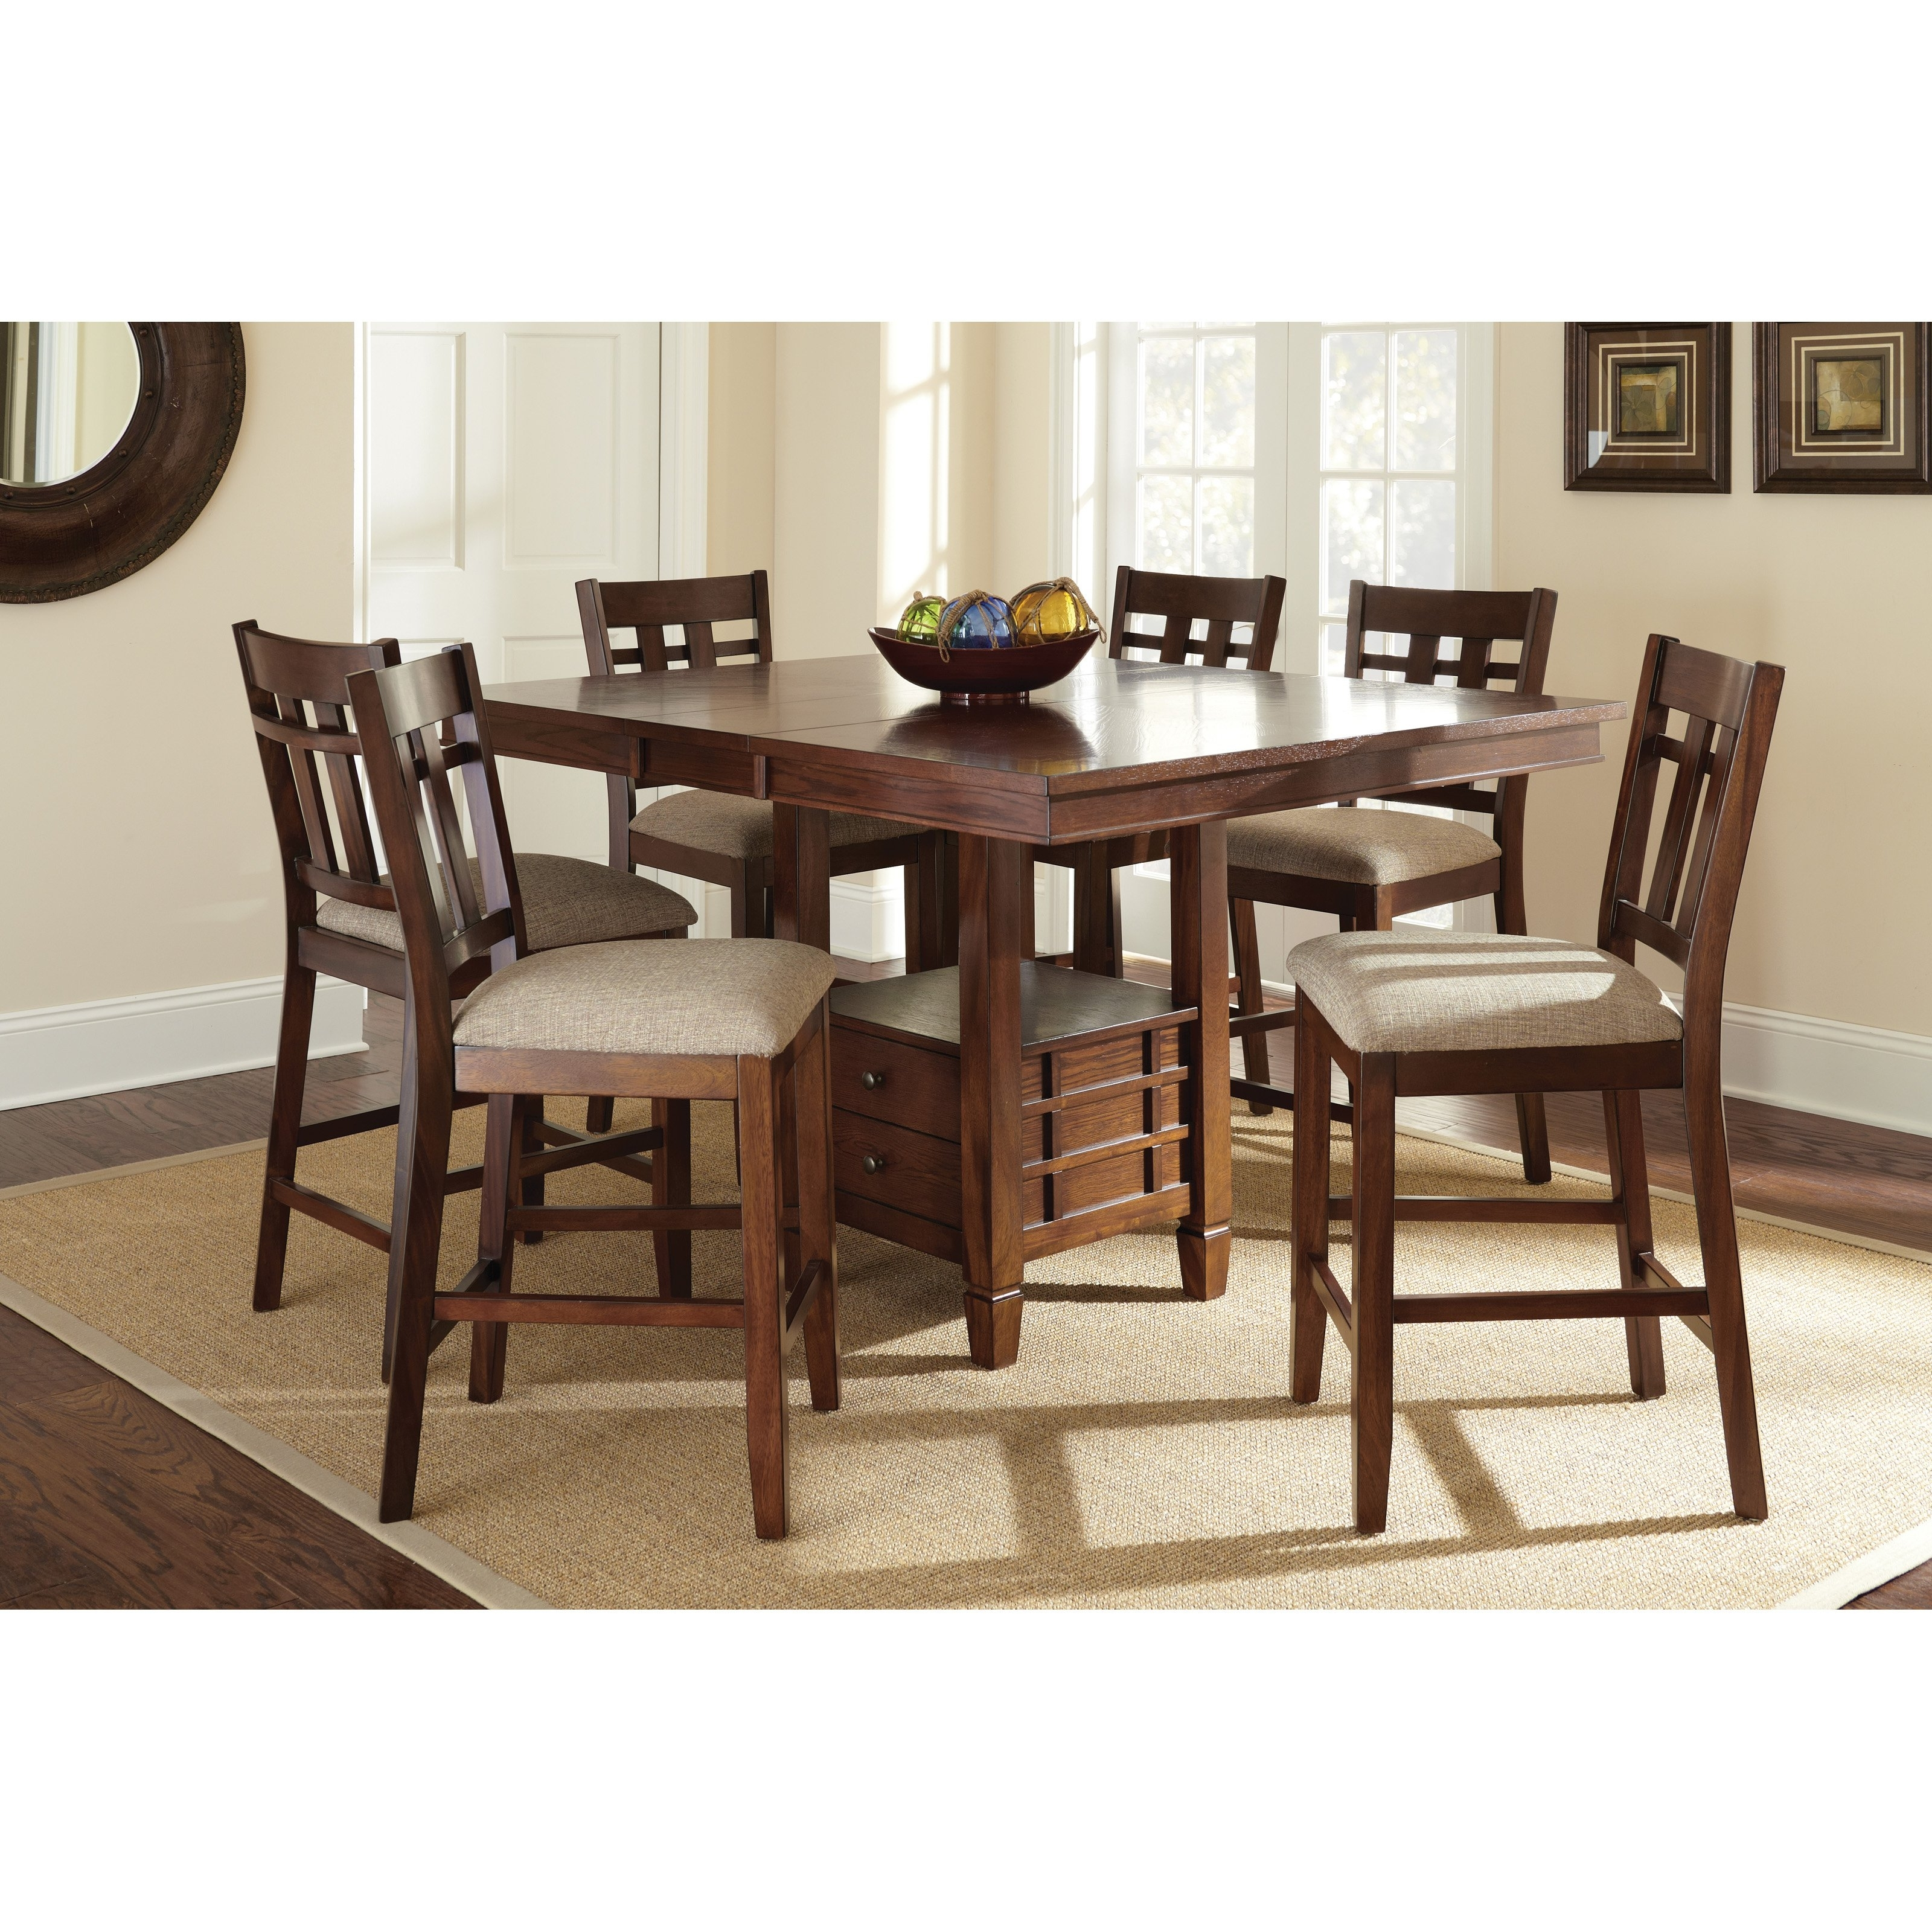 Candice Ii 7 Piece Extension Rectangle Dining Sets Inside Most Popular Steve Silver Bolton 7 Piece Counter Height Storage Dining Table Set (View 11 of 25)